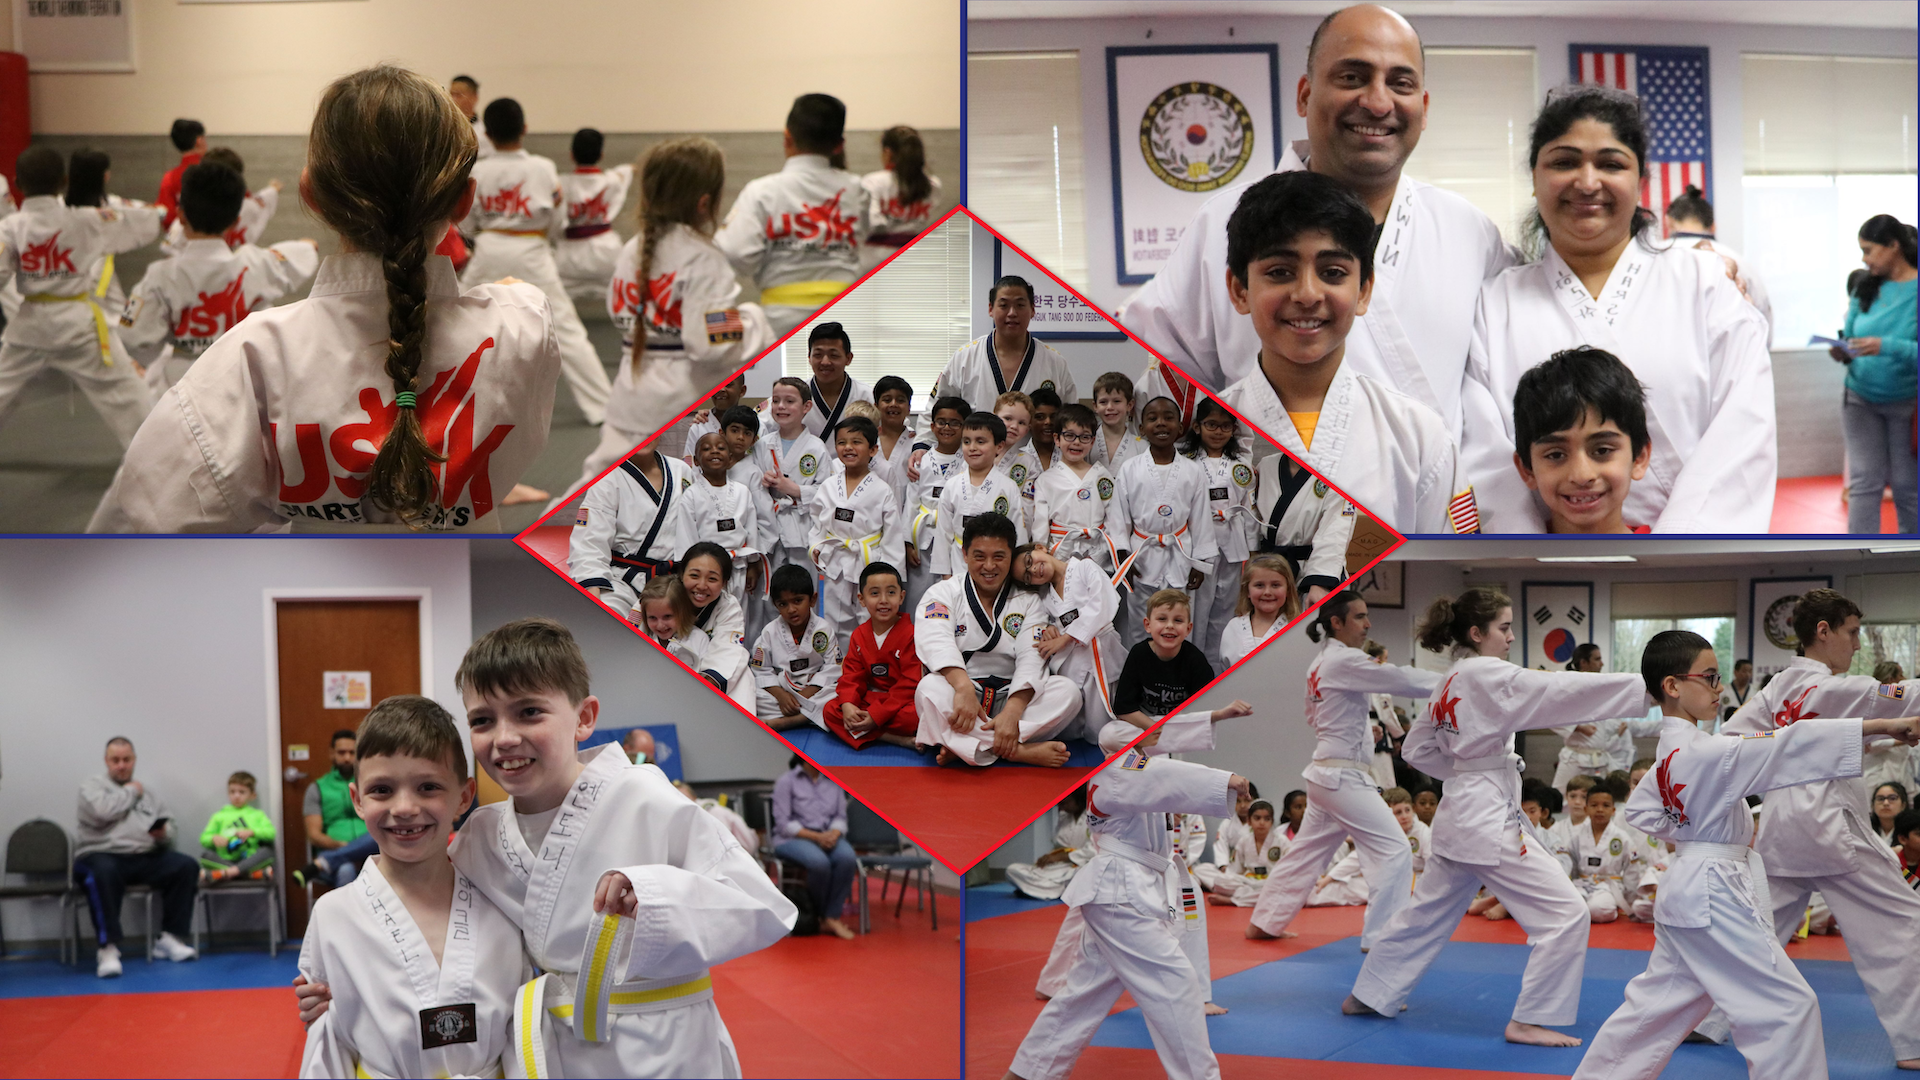 "<style> v {   text-shadow: 2px 2px 8px #1e2a55; } </style><strong><v><span style=""color:#fff;"">High quality martial arts training for ALL ages!</span></v></strong>"